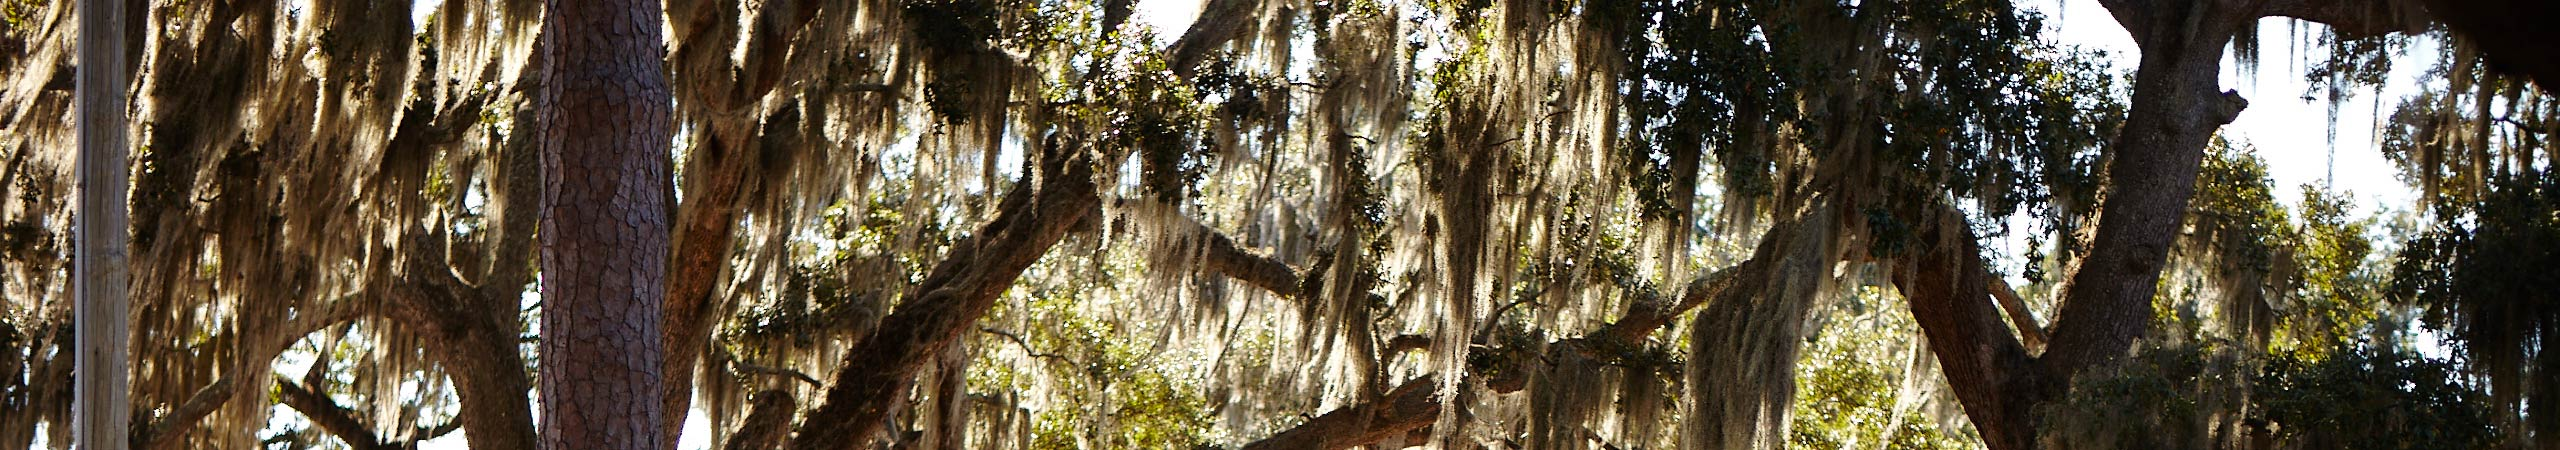 Trees with Spanish moss